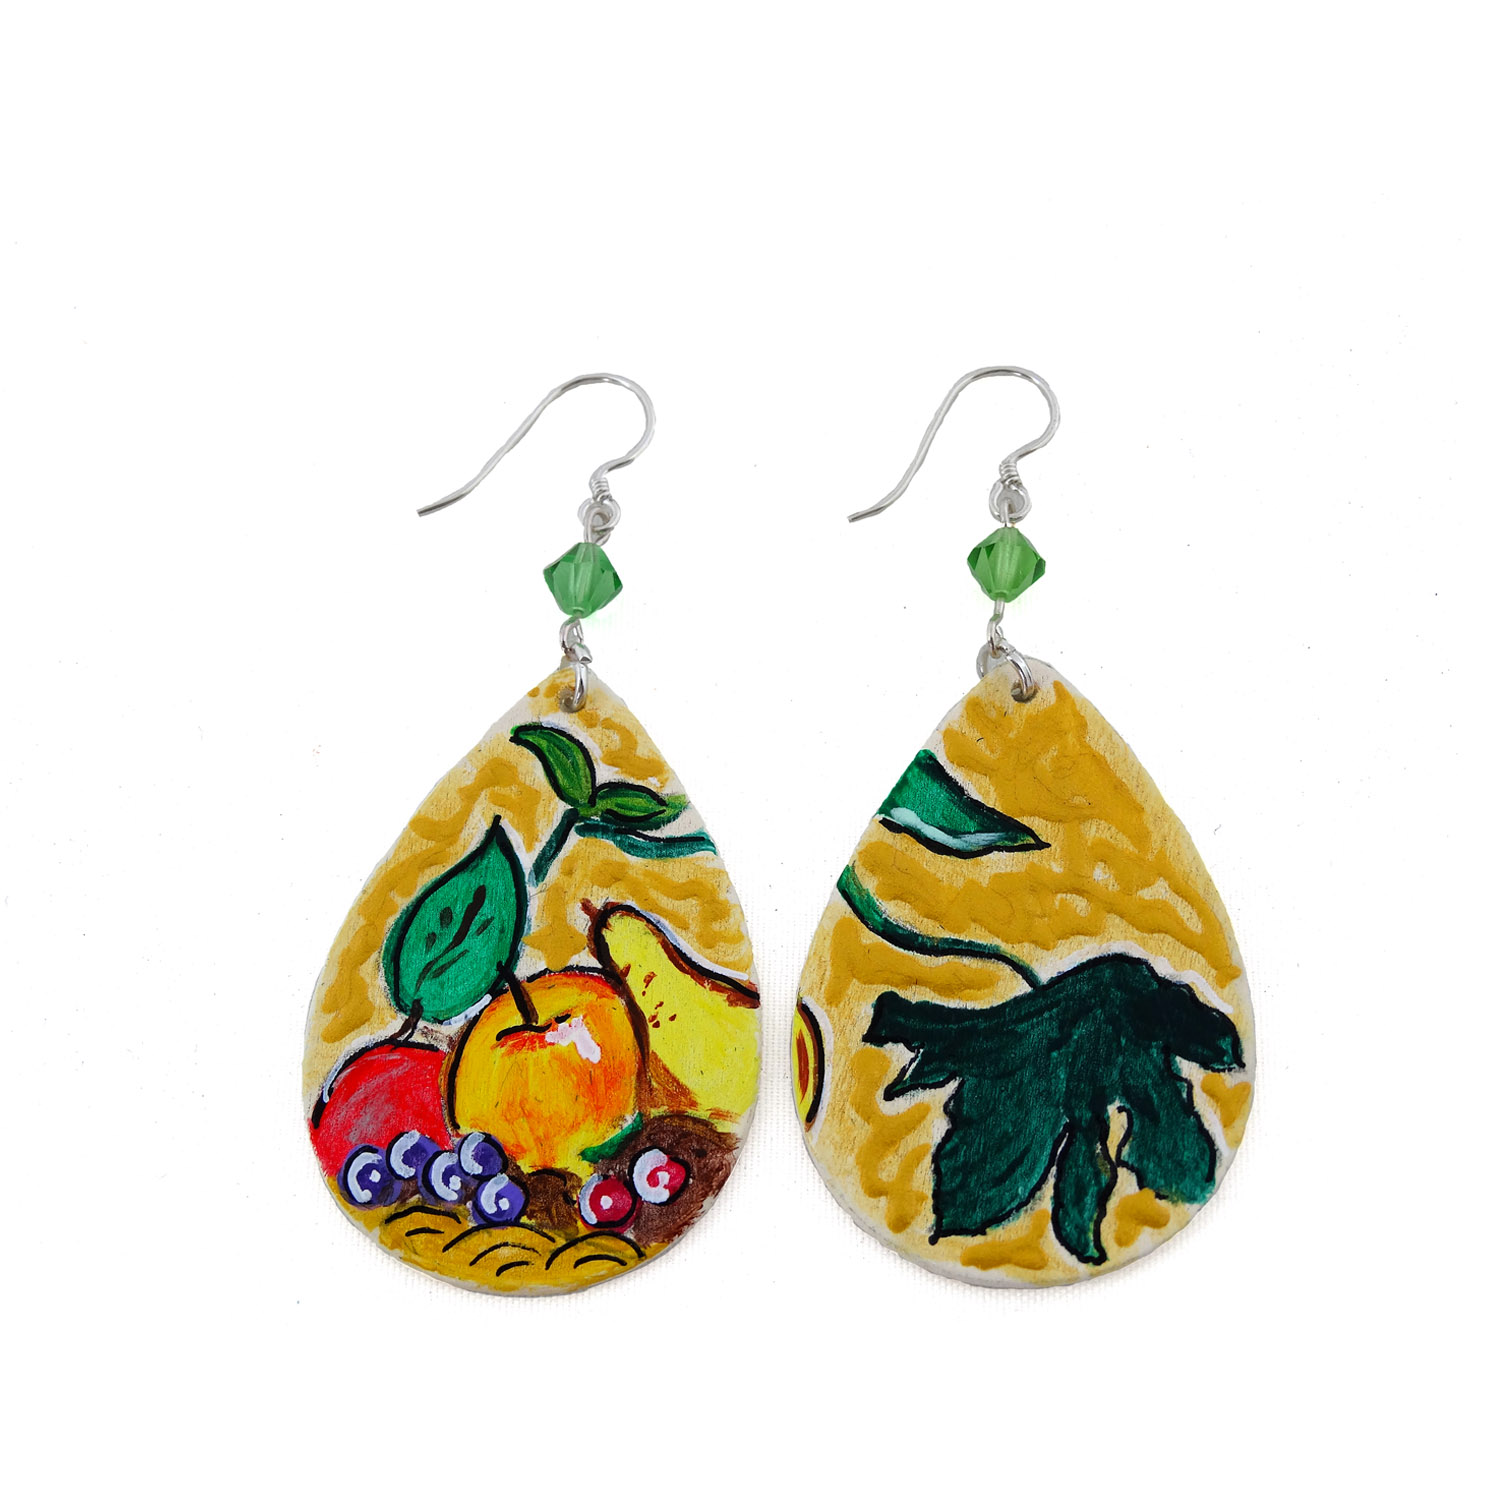 Hand-painted earrings - Basket of Fruit by Caravaggio